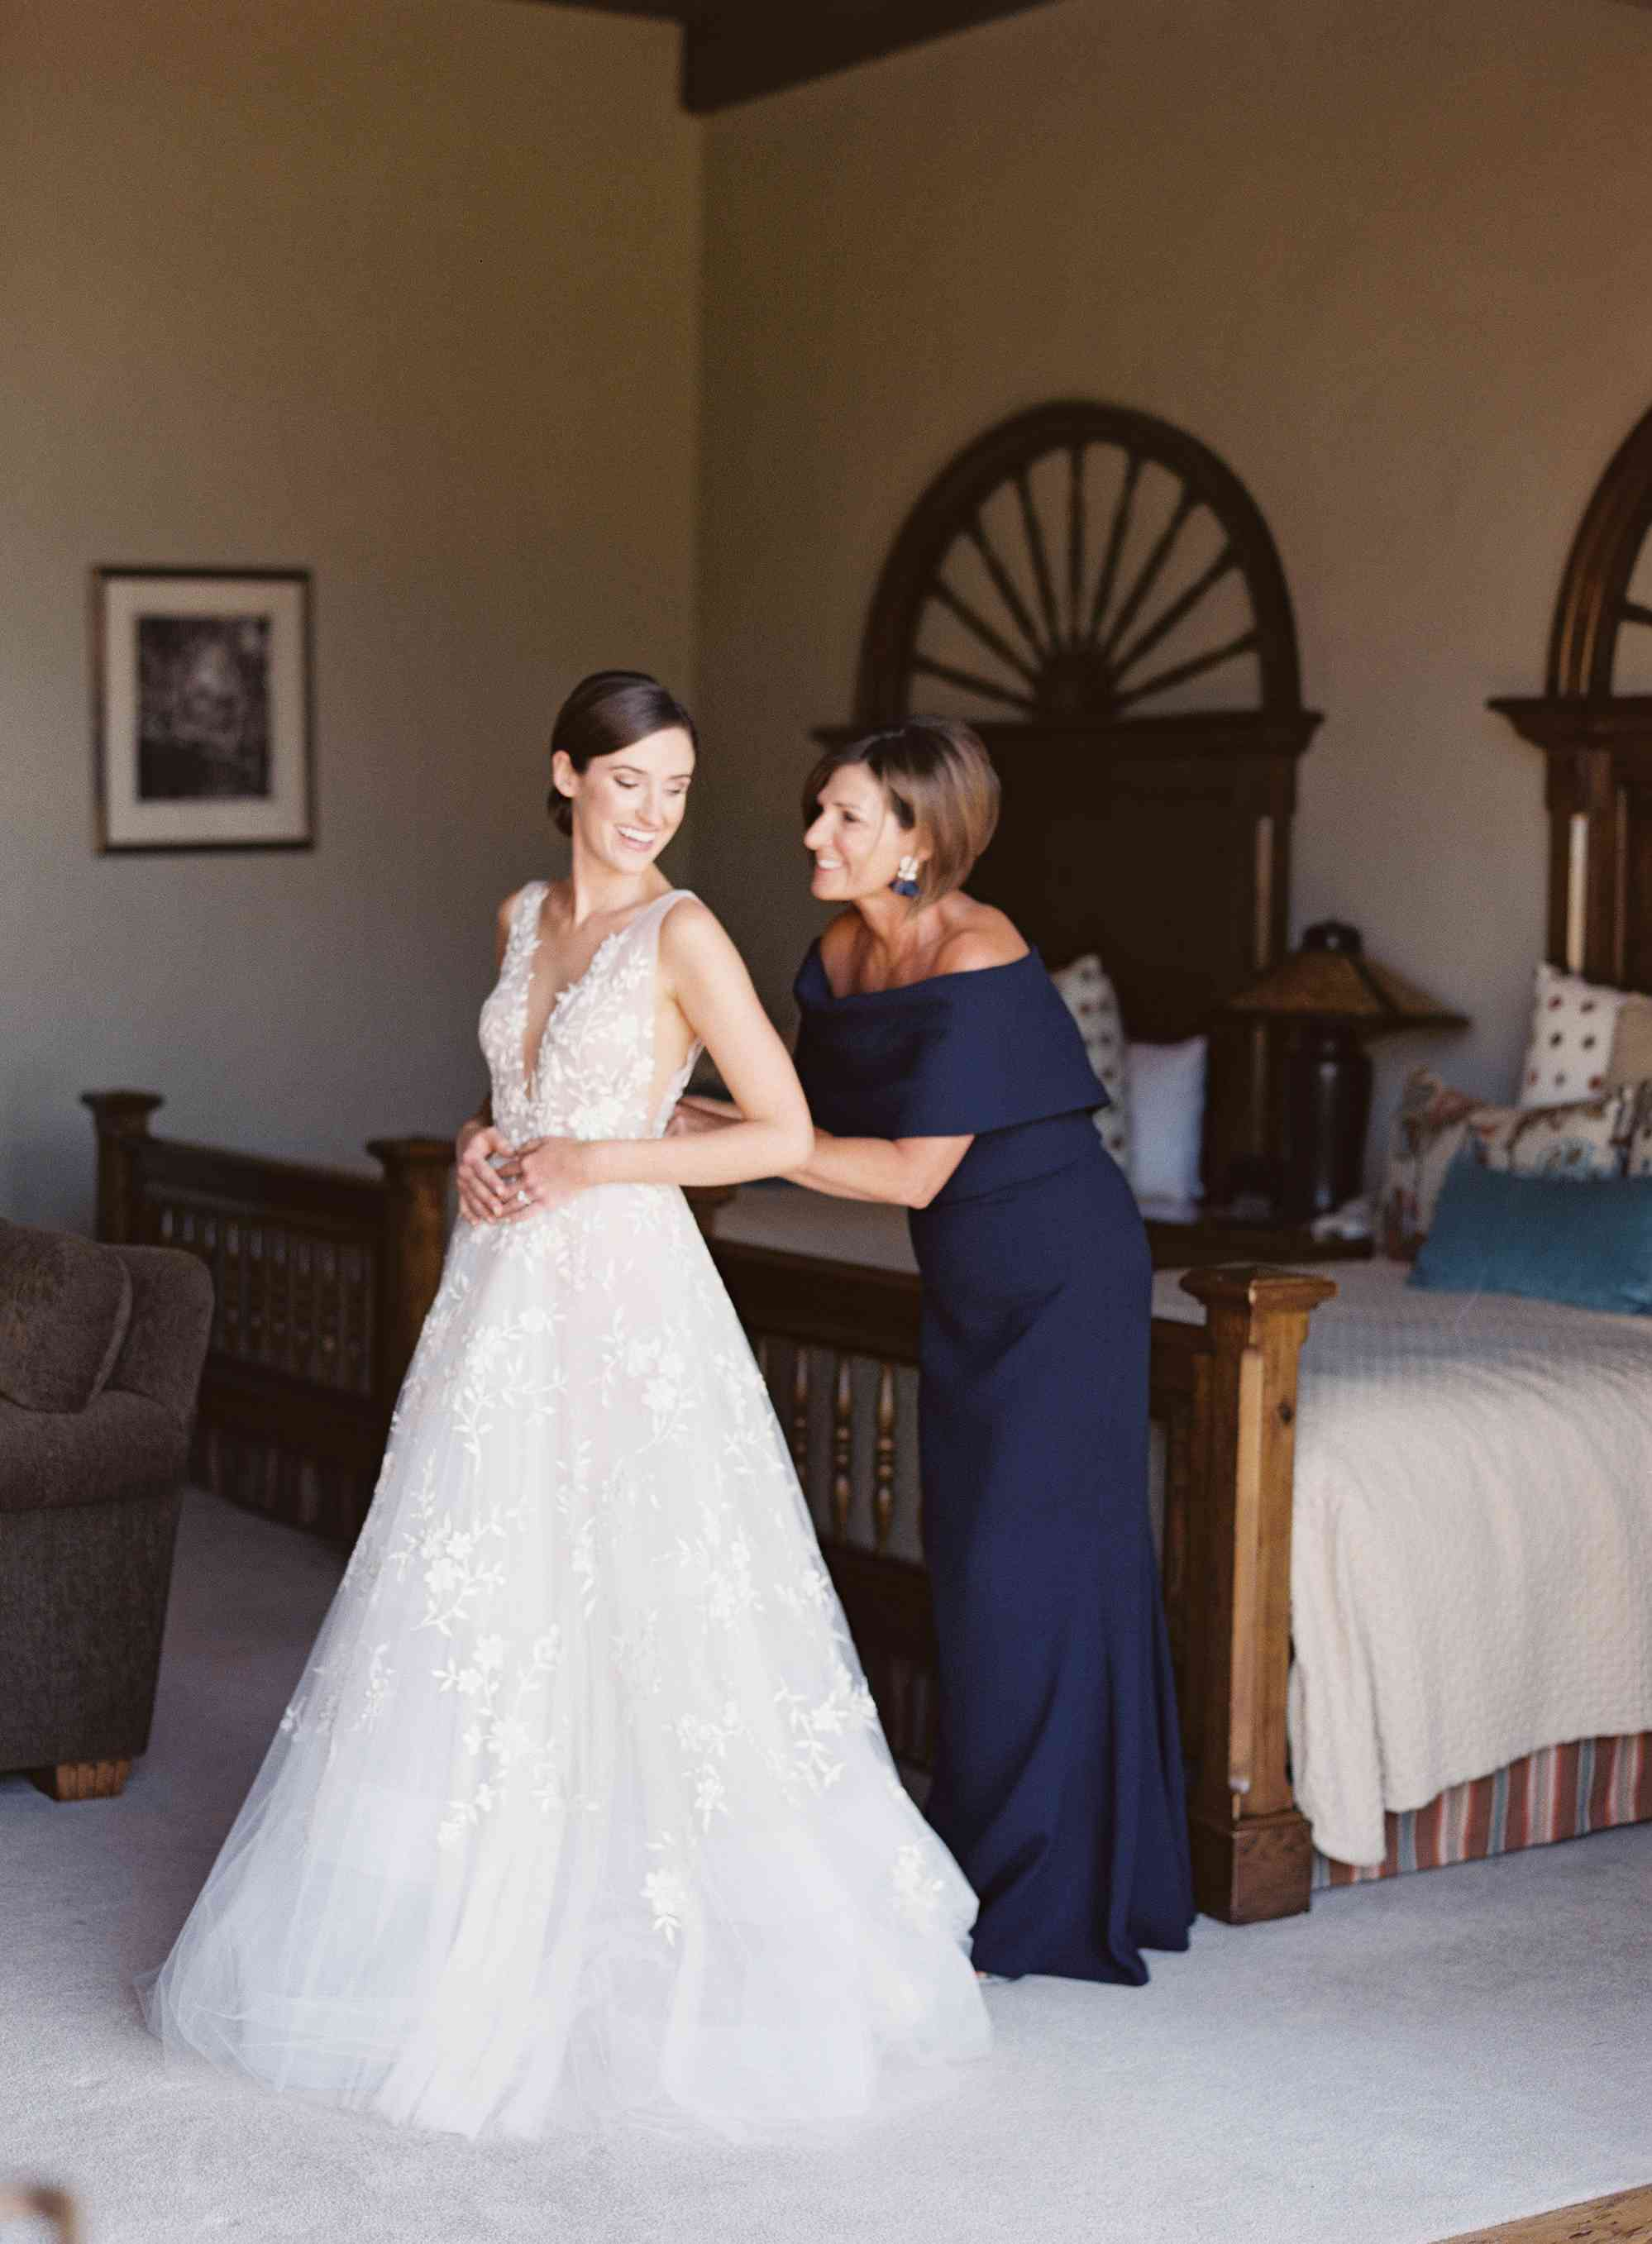 mother of the bride zipping wedding dress